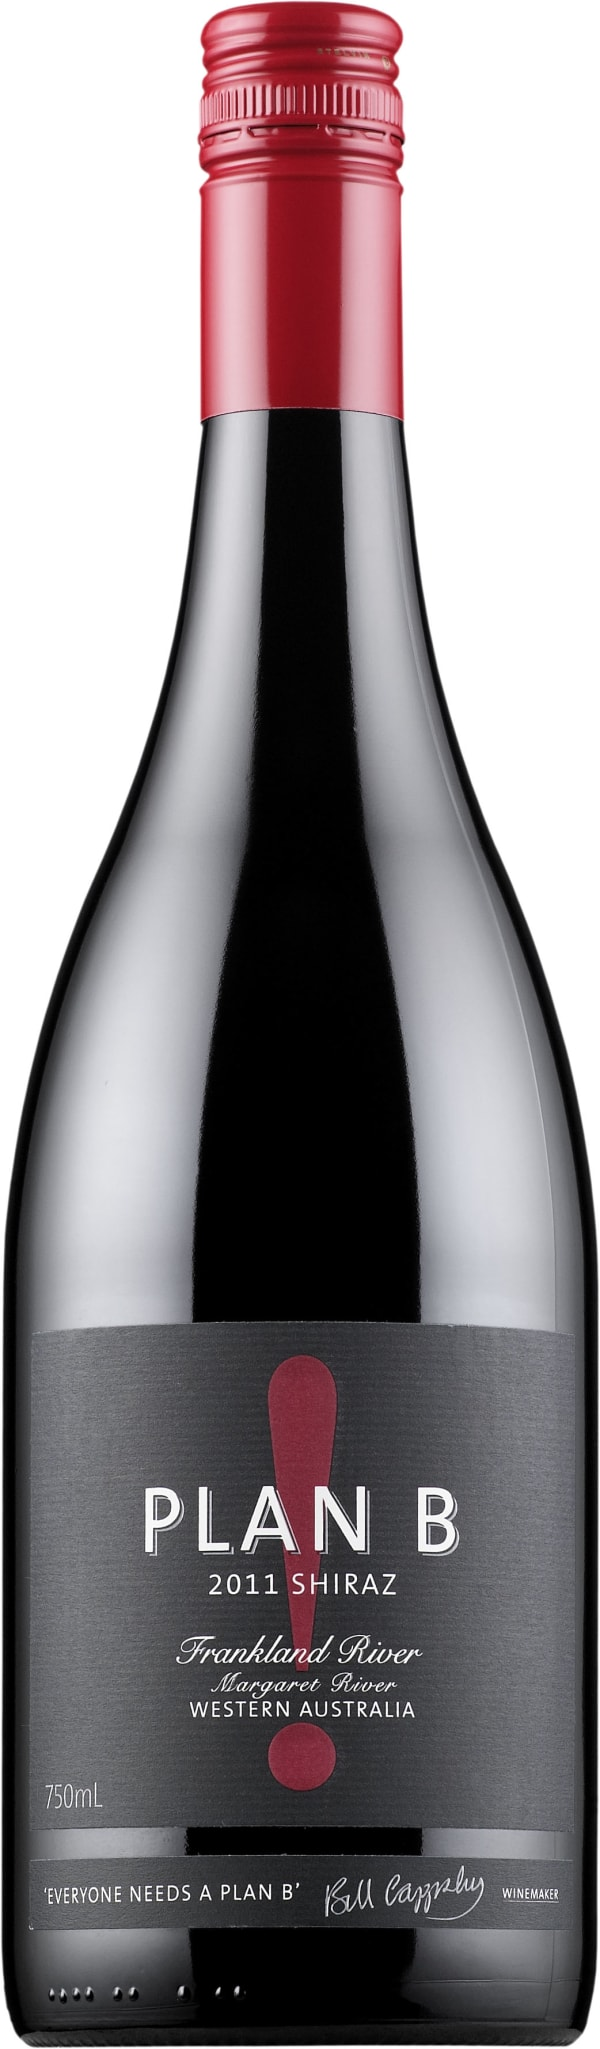 Plan B Shiraz 2014